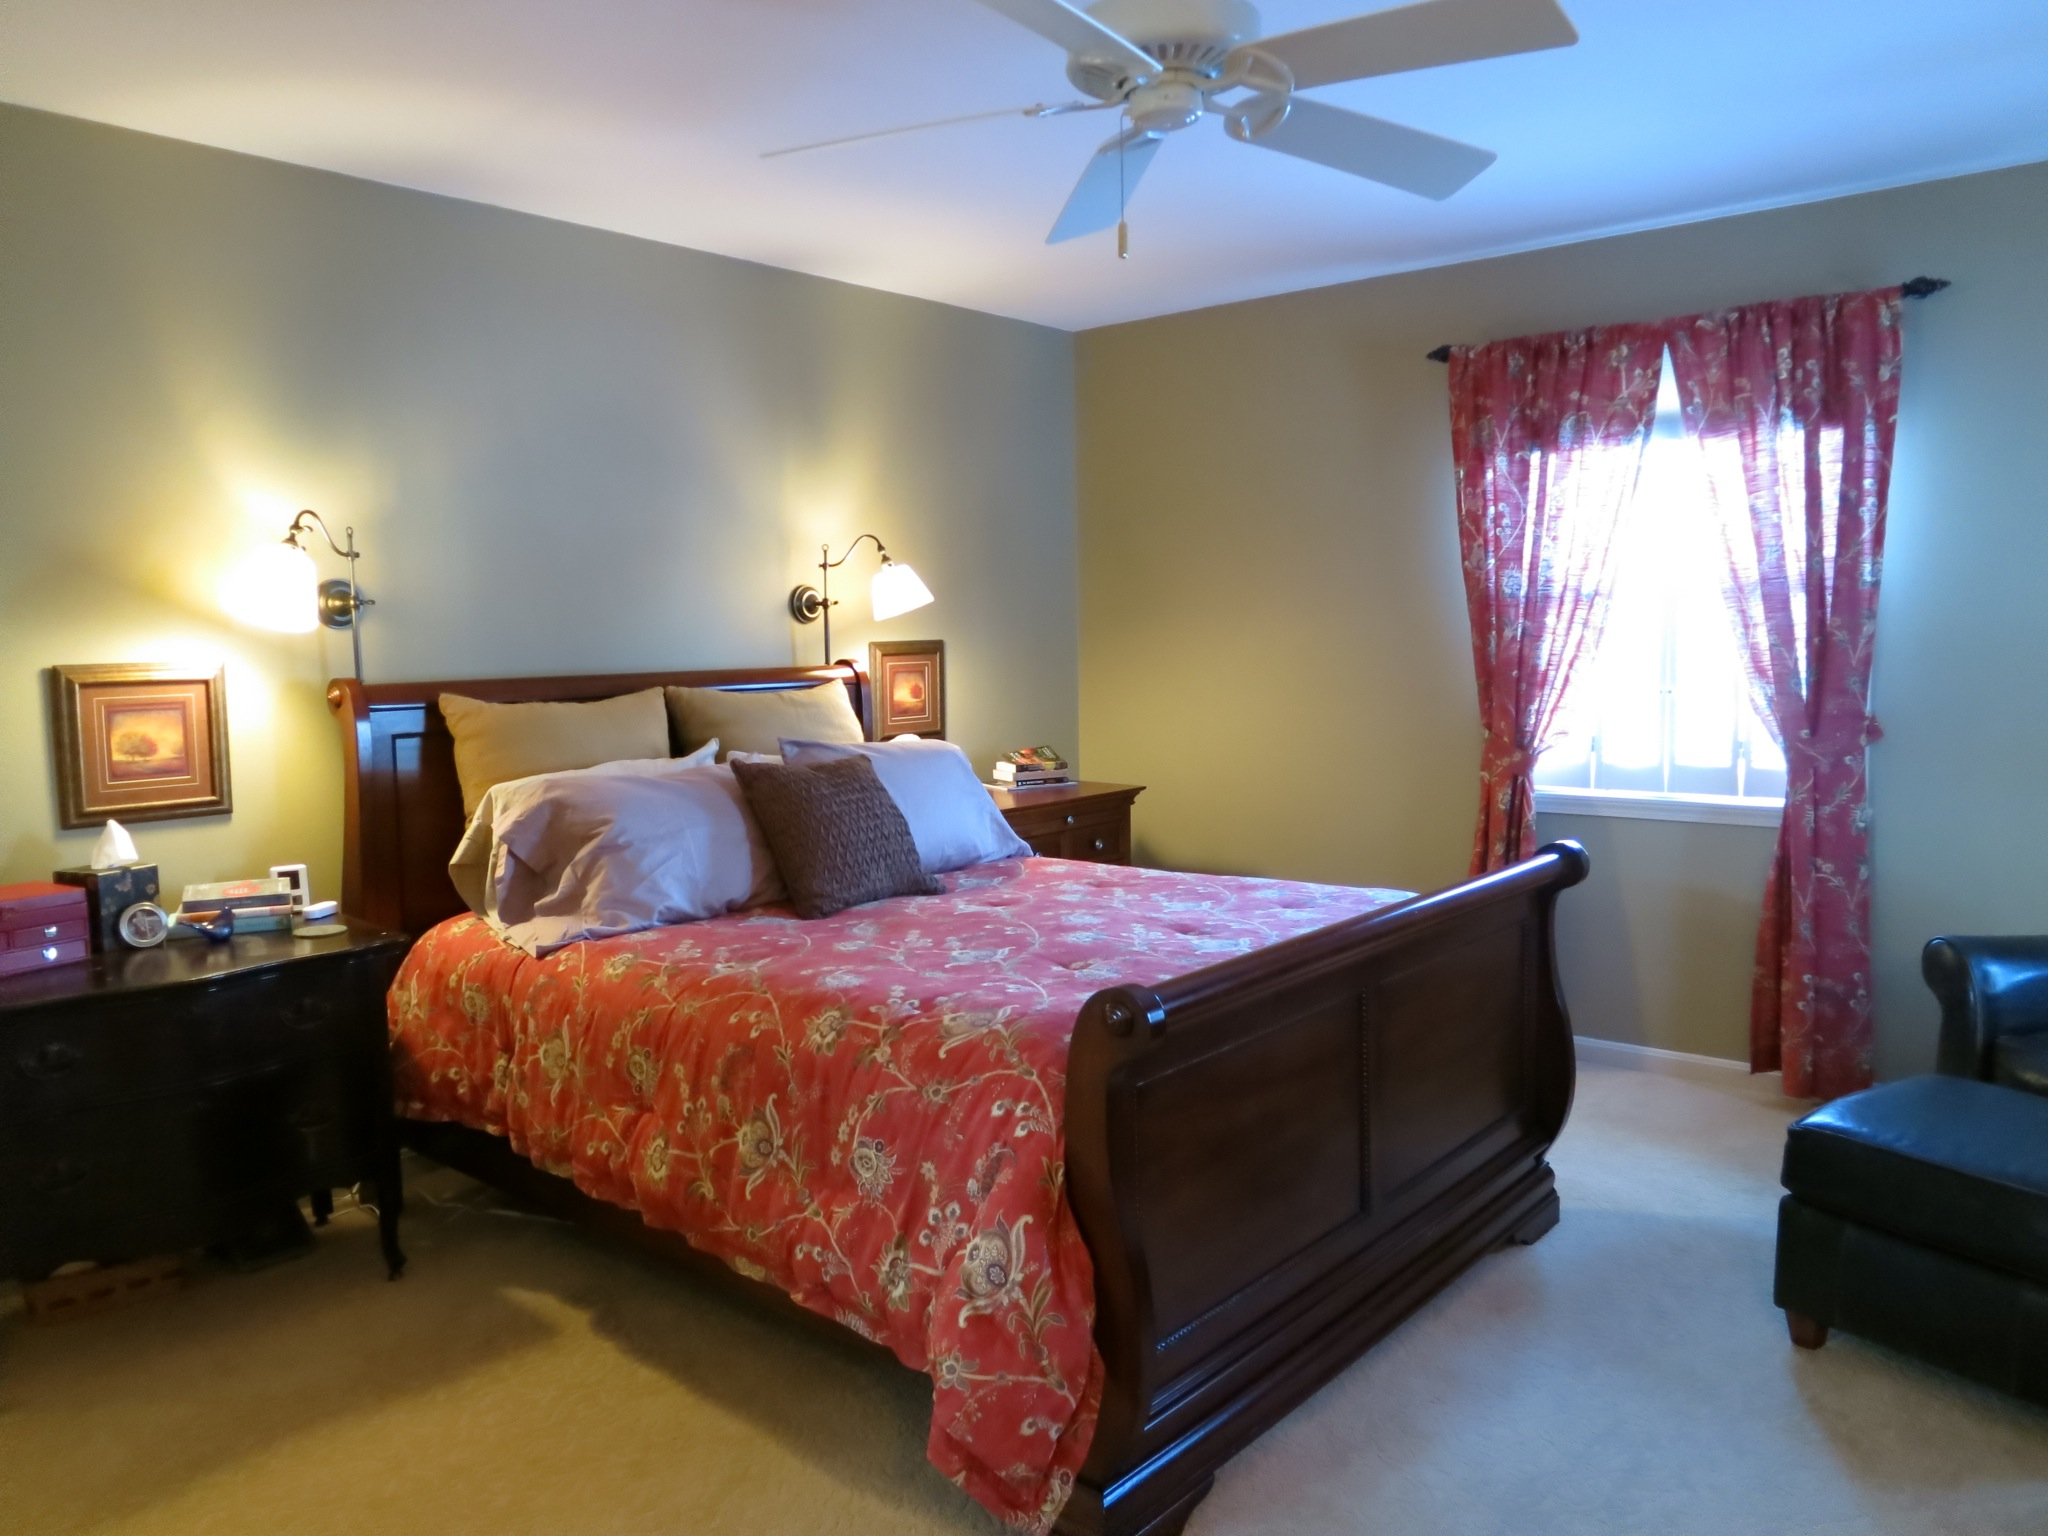 The master bedroom is amply sized (your bed will fit just fine.)